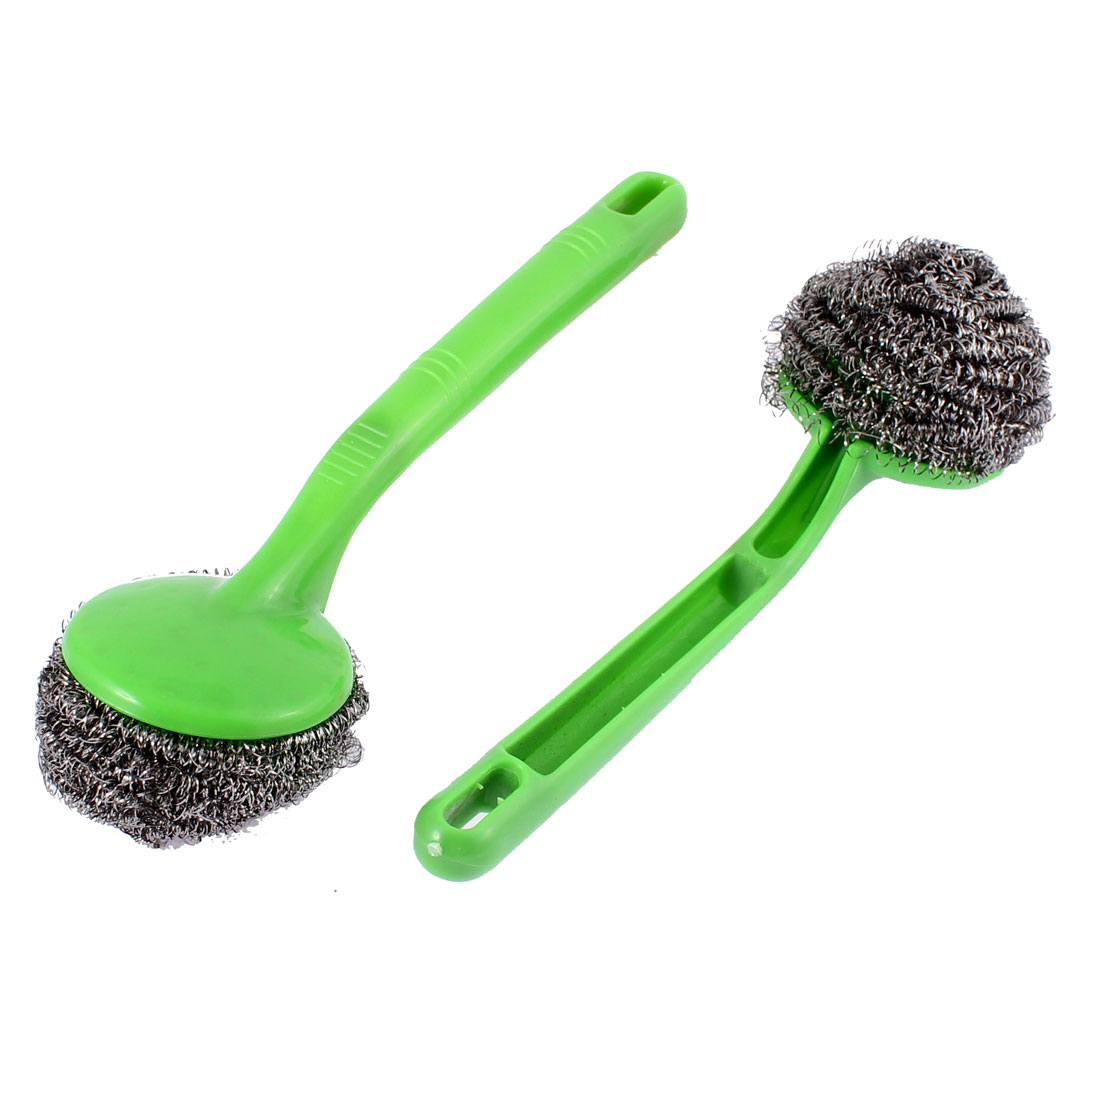 Plastic Handle Cleaning Steel Wire Ball Brush 9 Inch Length Green 2pcs